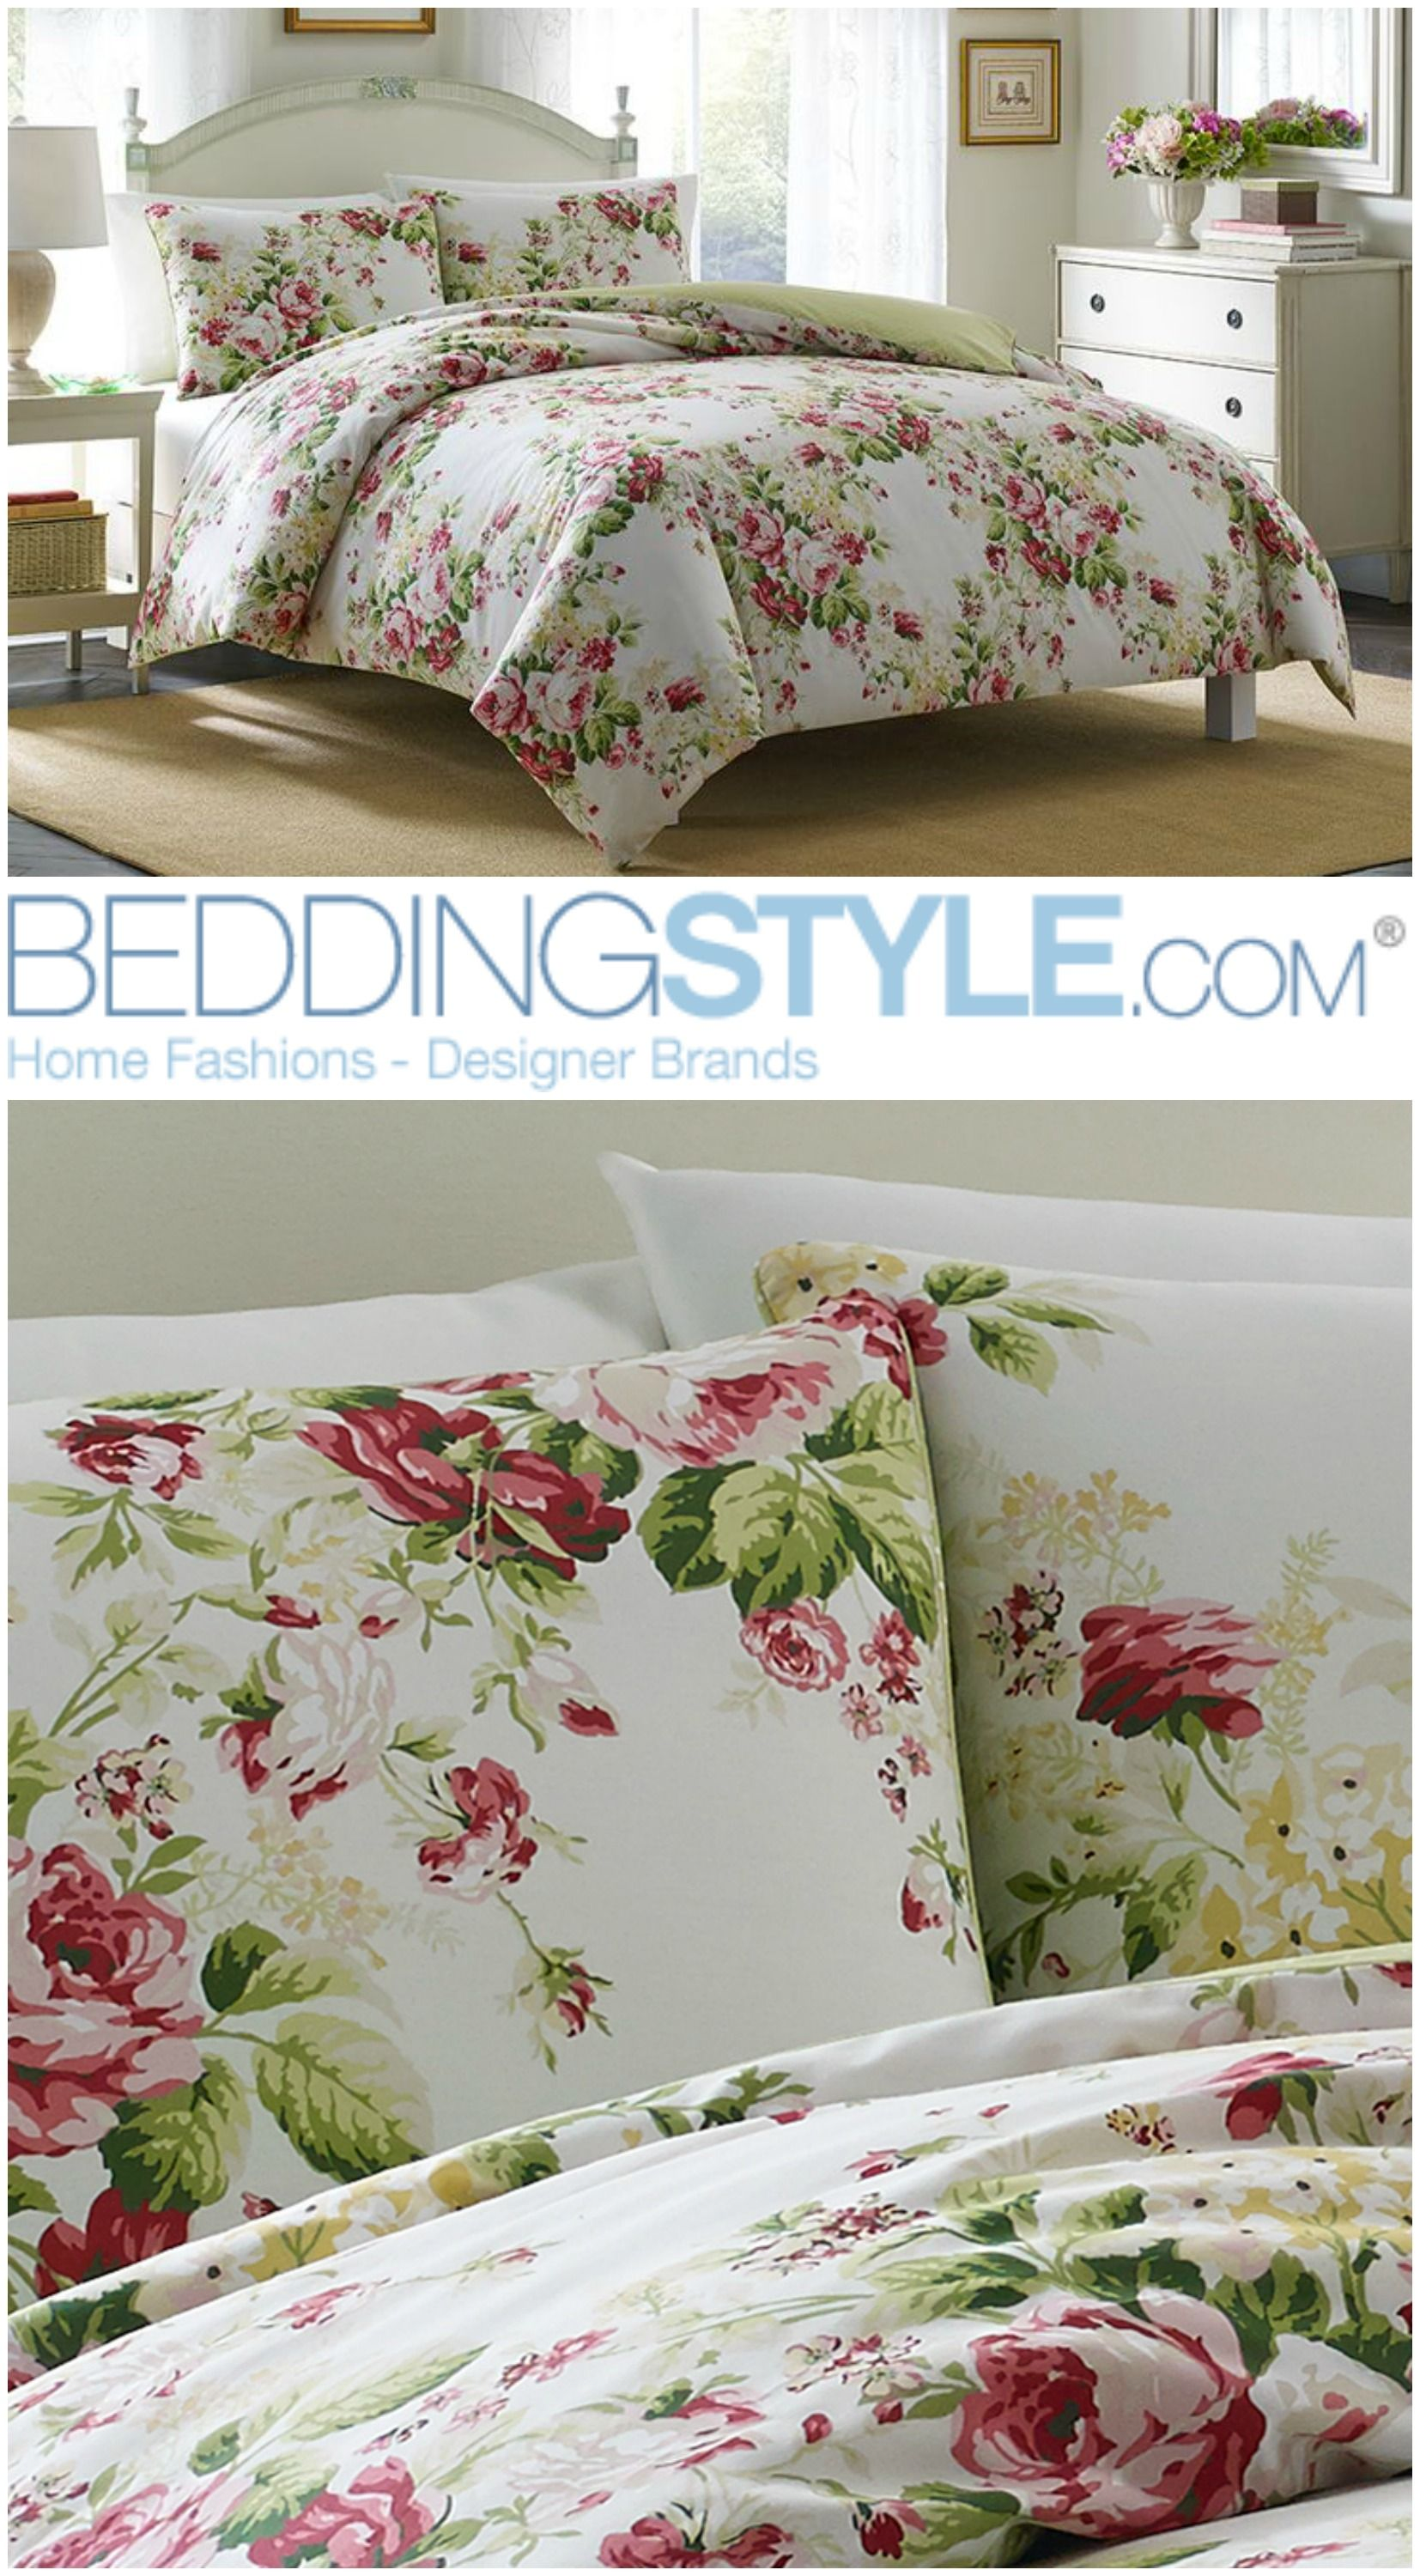 Floral Bedspreads And Comforters.Laura Ashley Joyce Pink Floral Bedding Beddingstyle